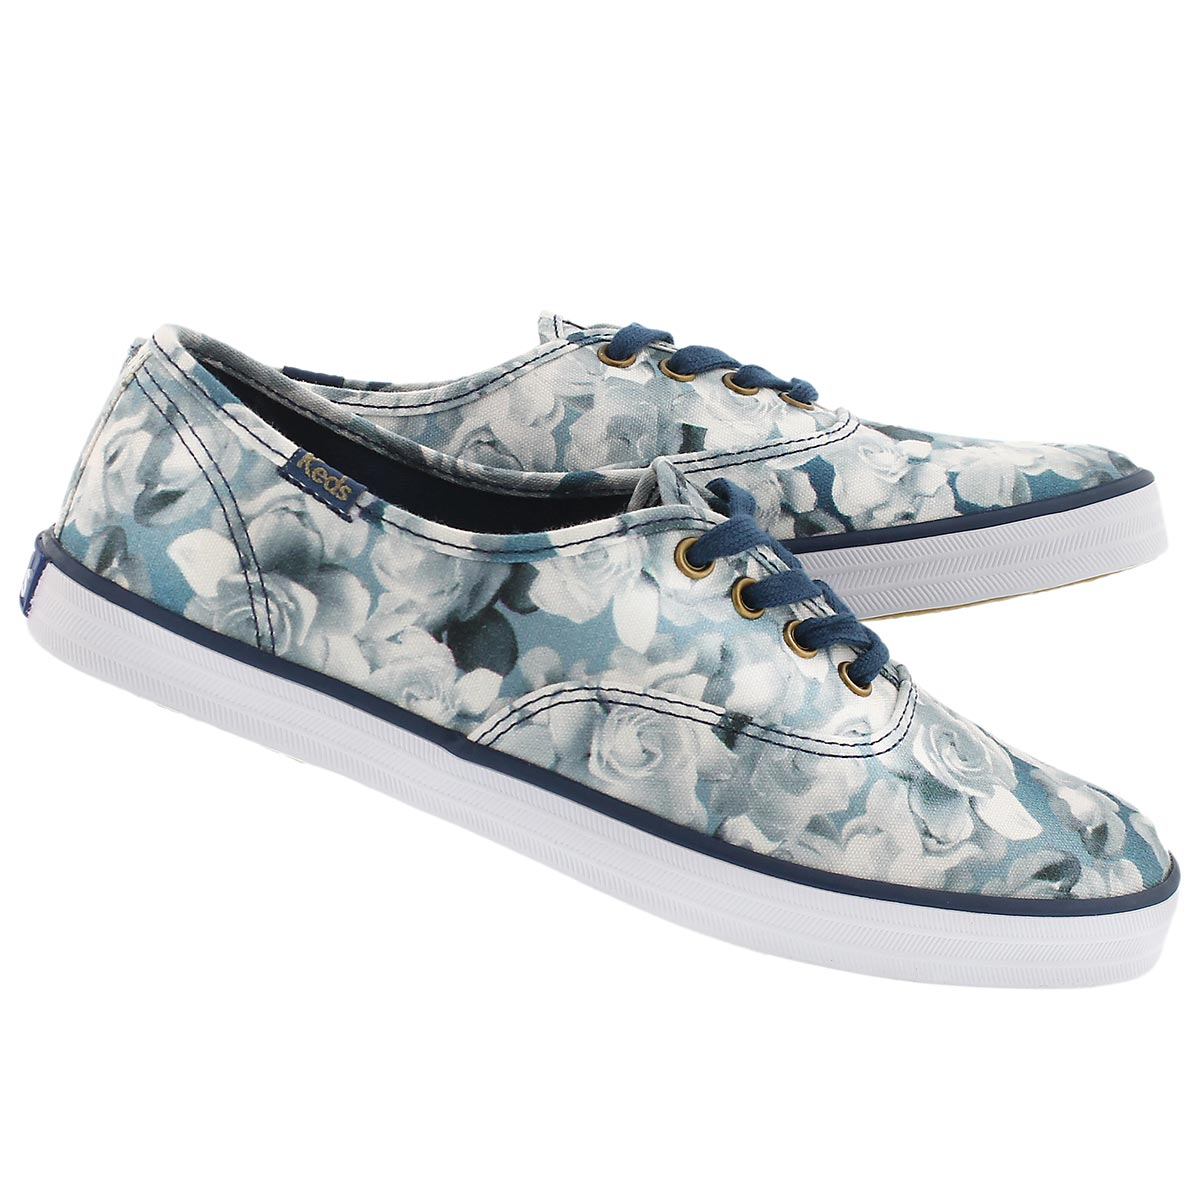 Lds Frost Floral blue printed sneaker